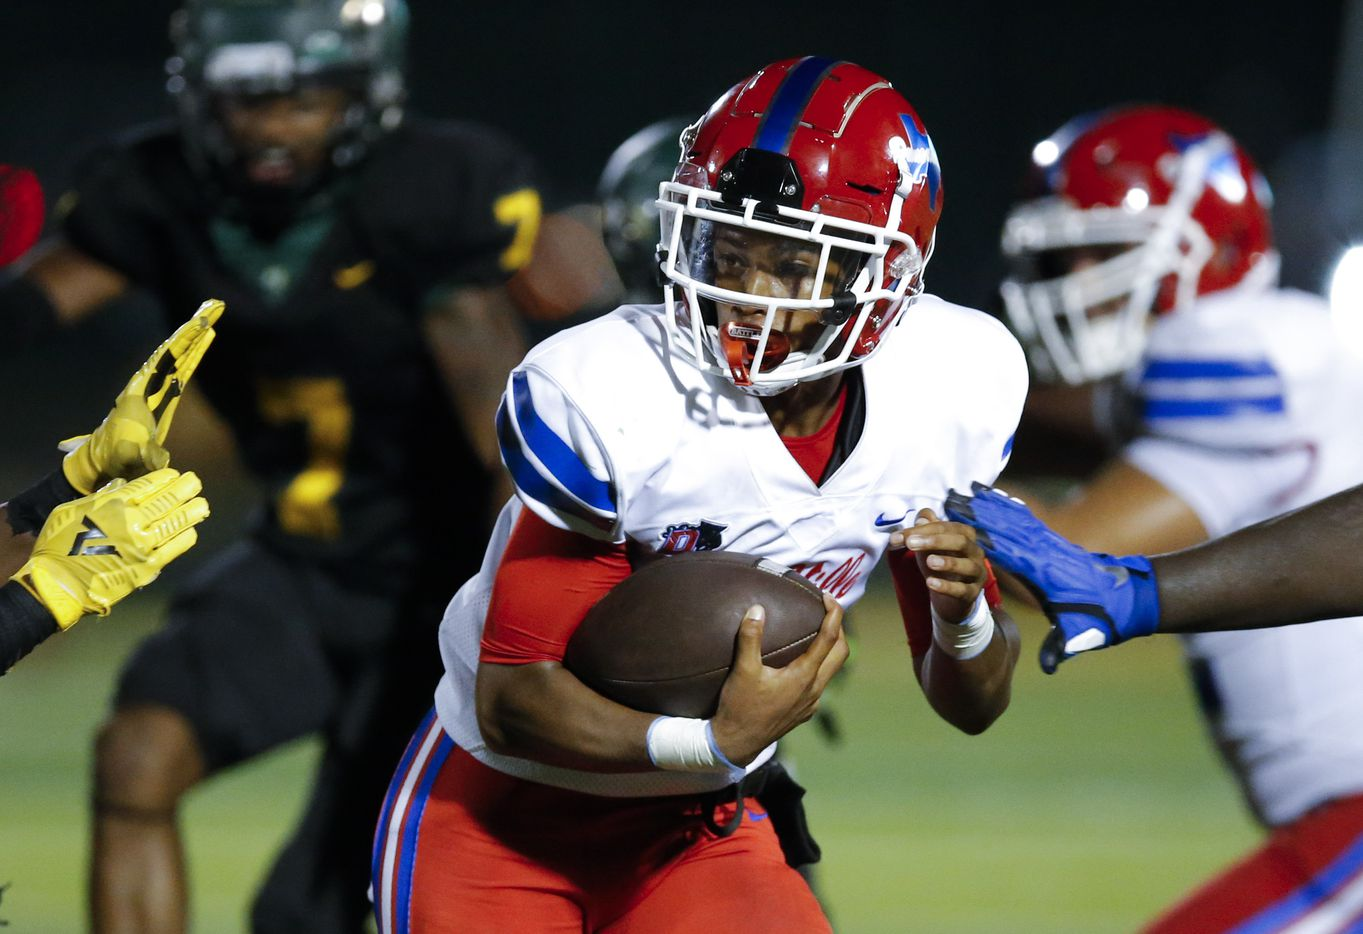 Duncanville senior quarterback Solomon James carries the ball during the second half of a high school football game against DeSoto at DeSoto High School, Friday, September 17, 2021. Duncanville won 42-21. (Brandon Wade/Special Contributor)